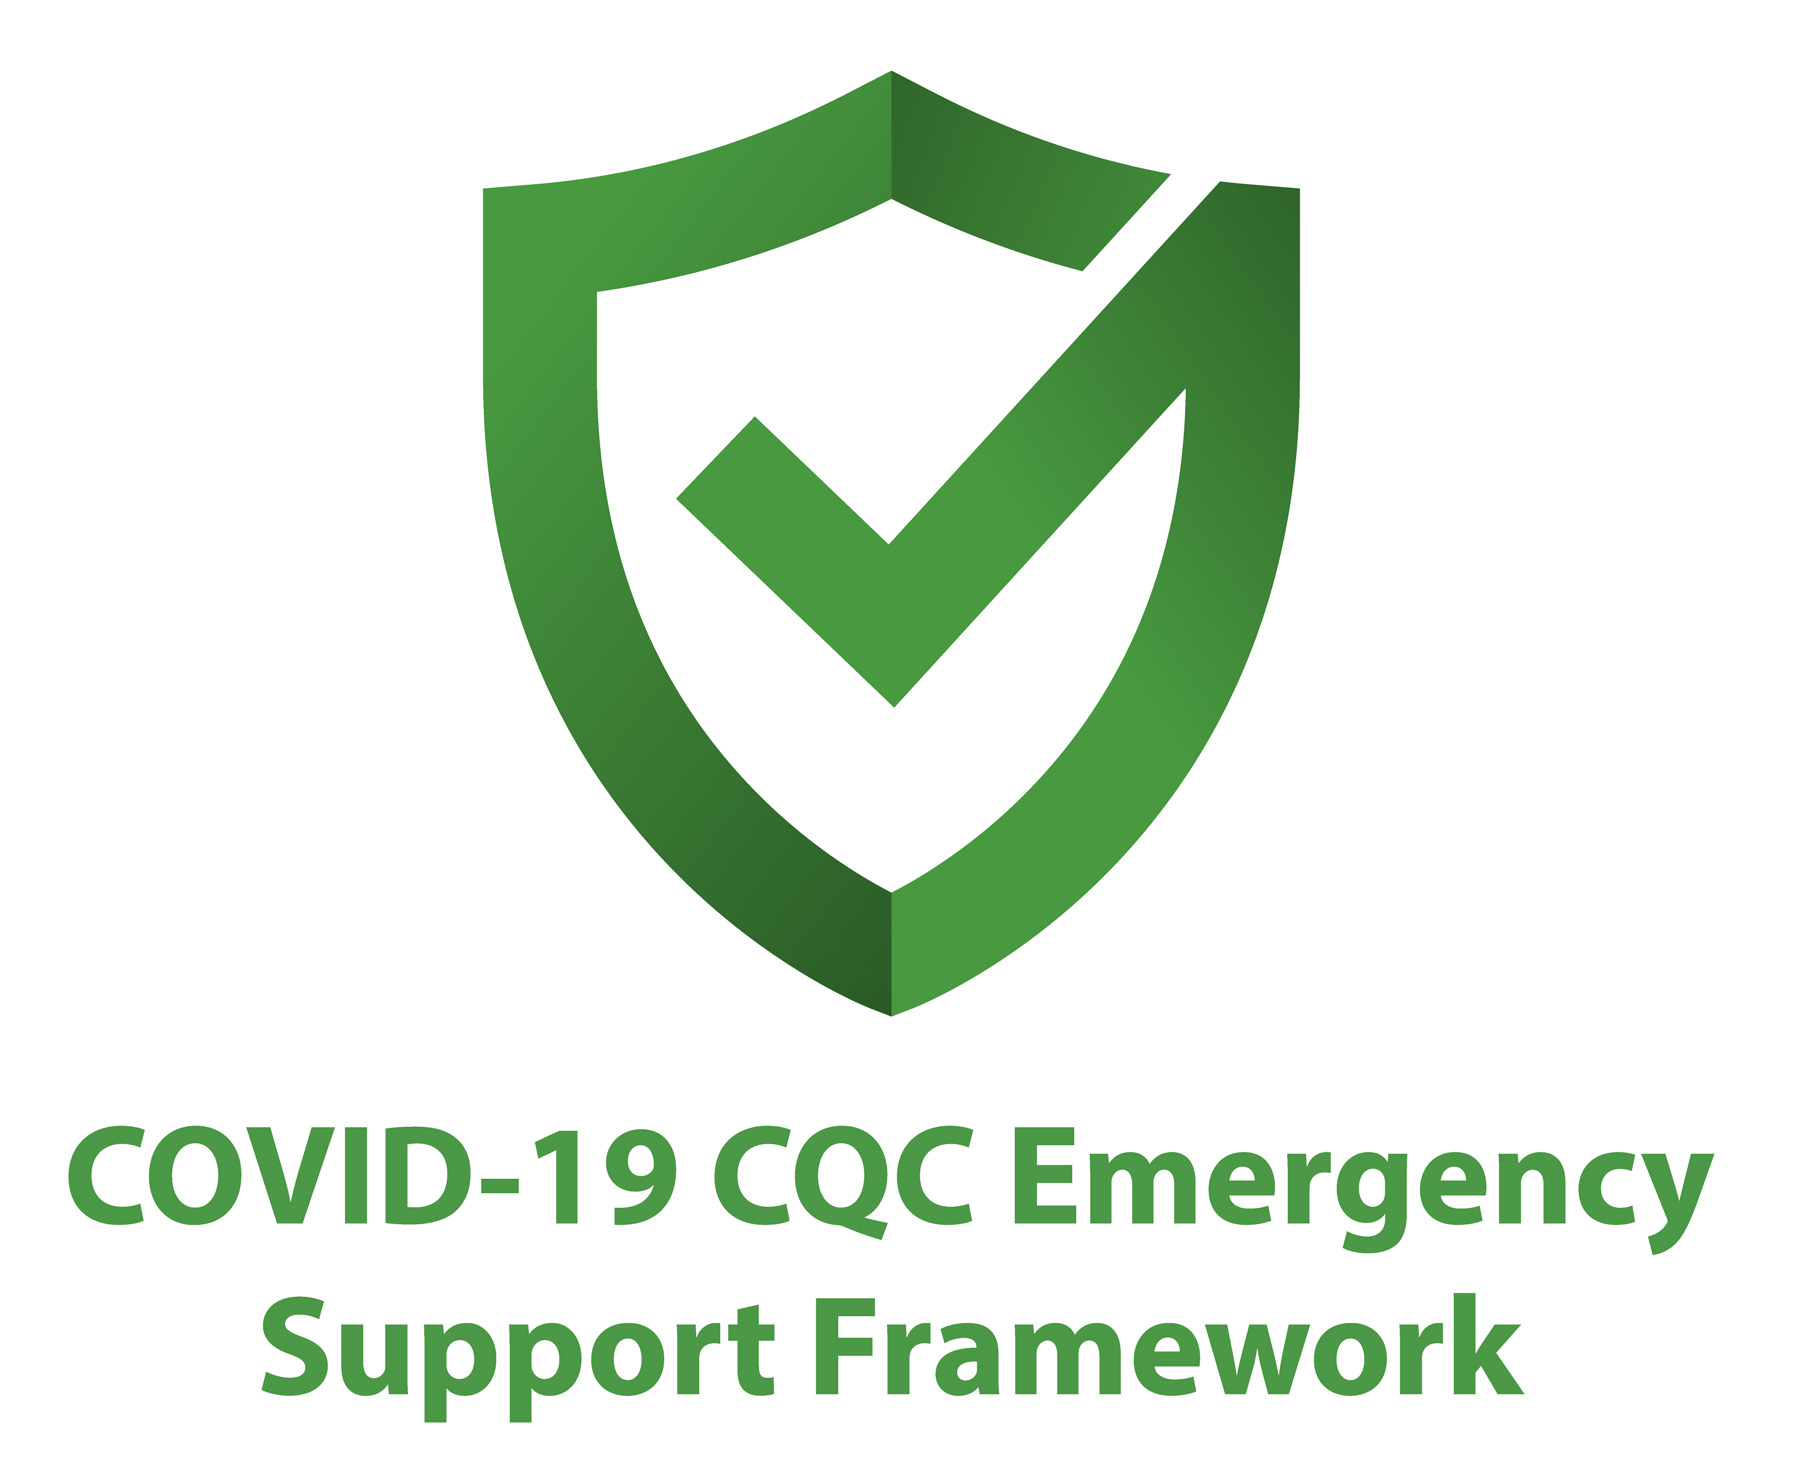 COVID-19 CQC Emergency Support Framework